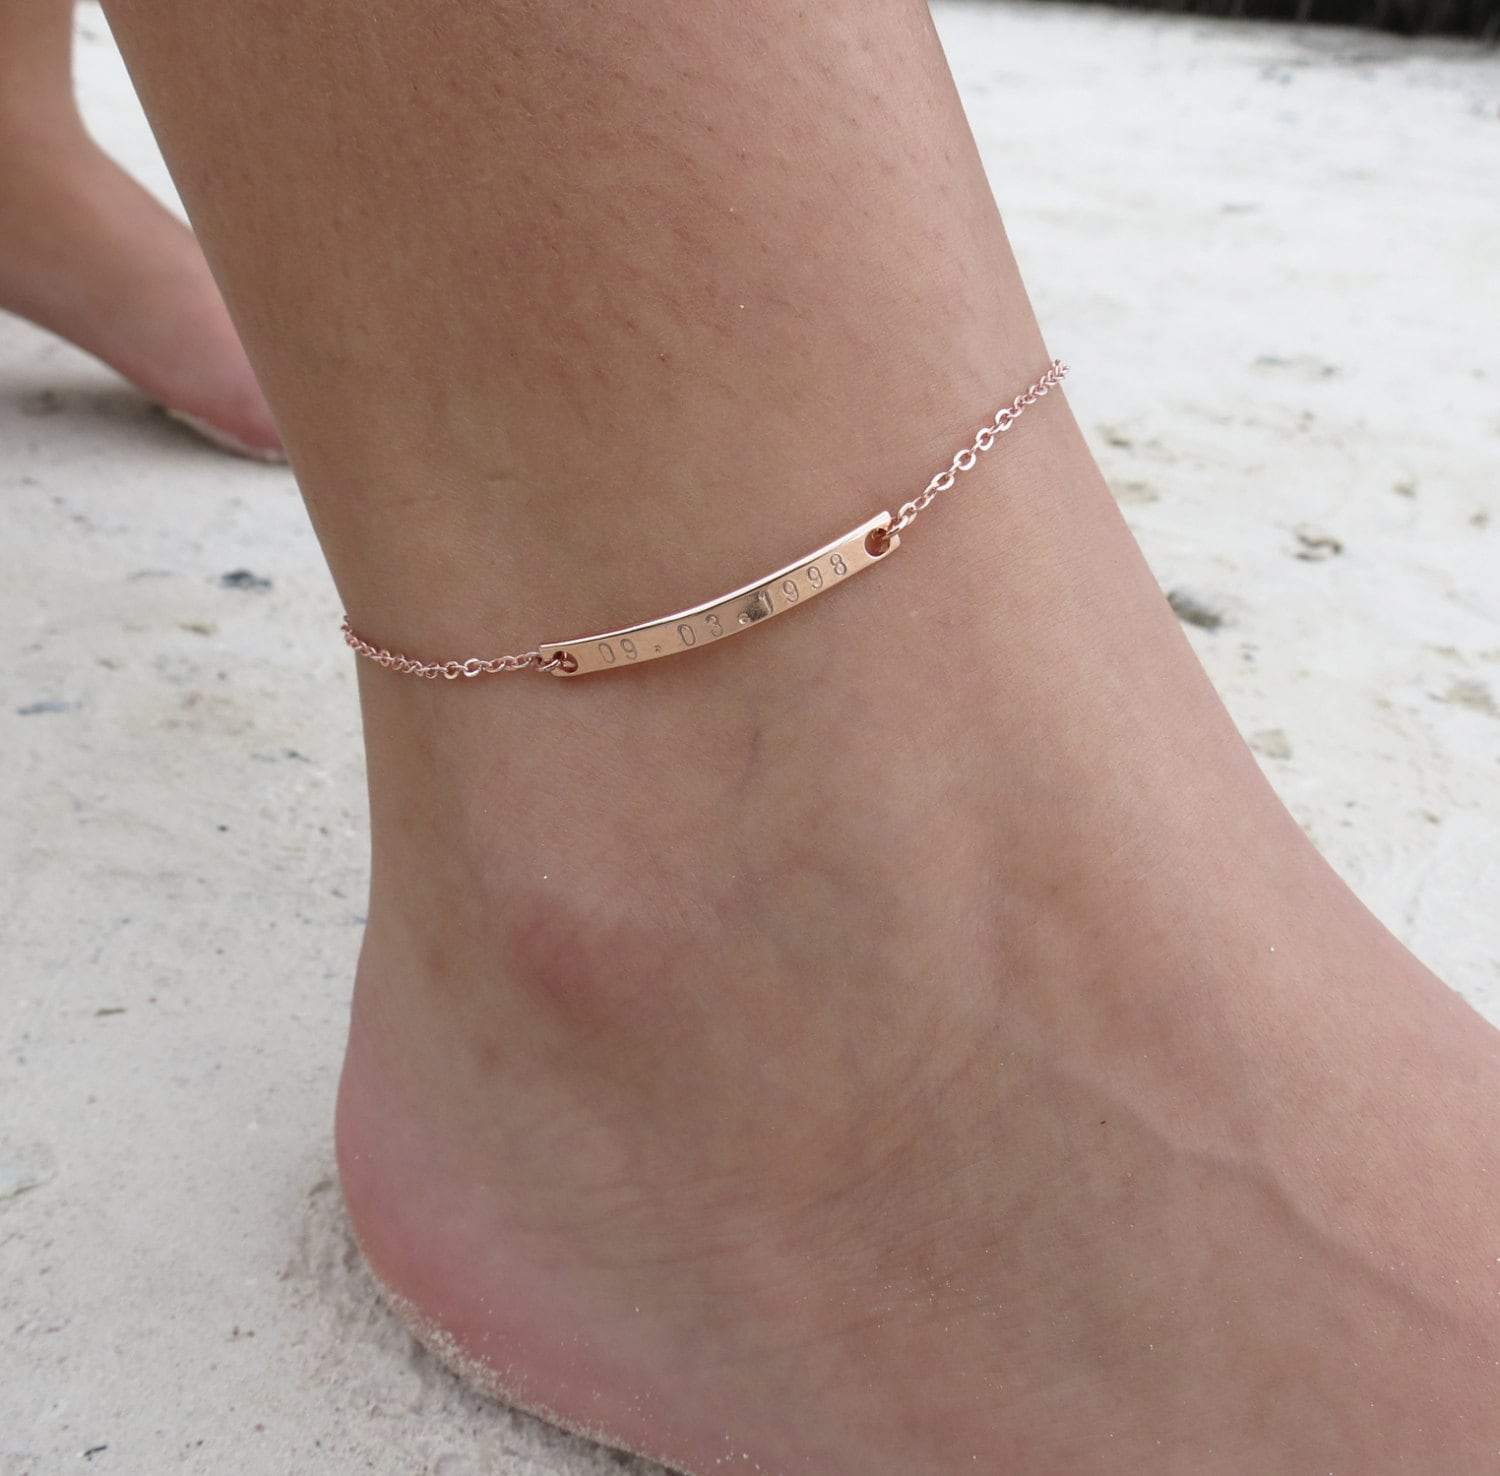 dangling bling ankle custom anklet jewelry toe mm in filled myshoplah bracelet beaded gold beads bracelets